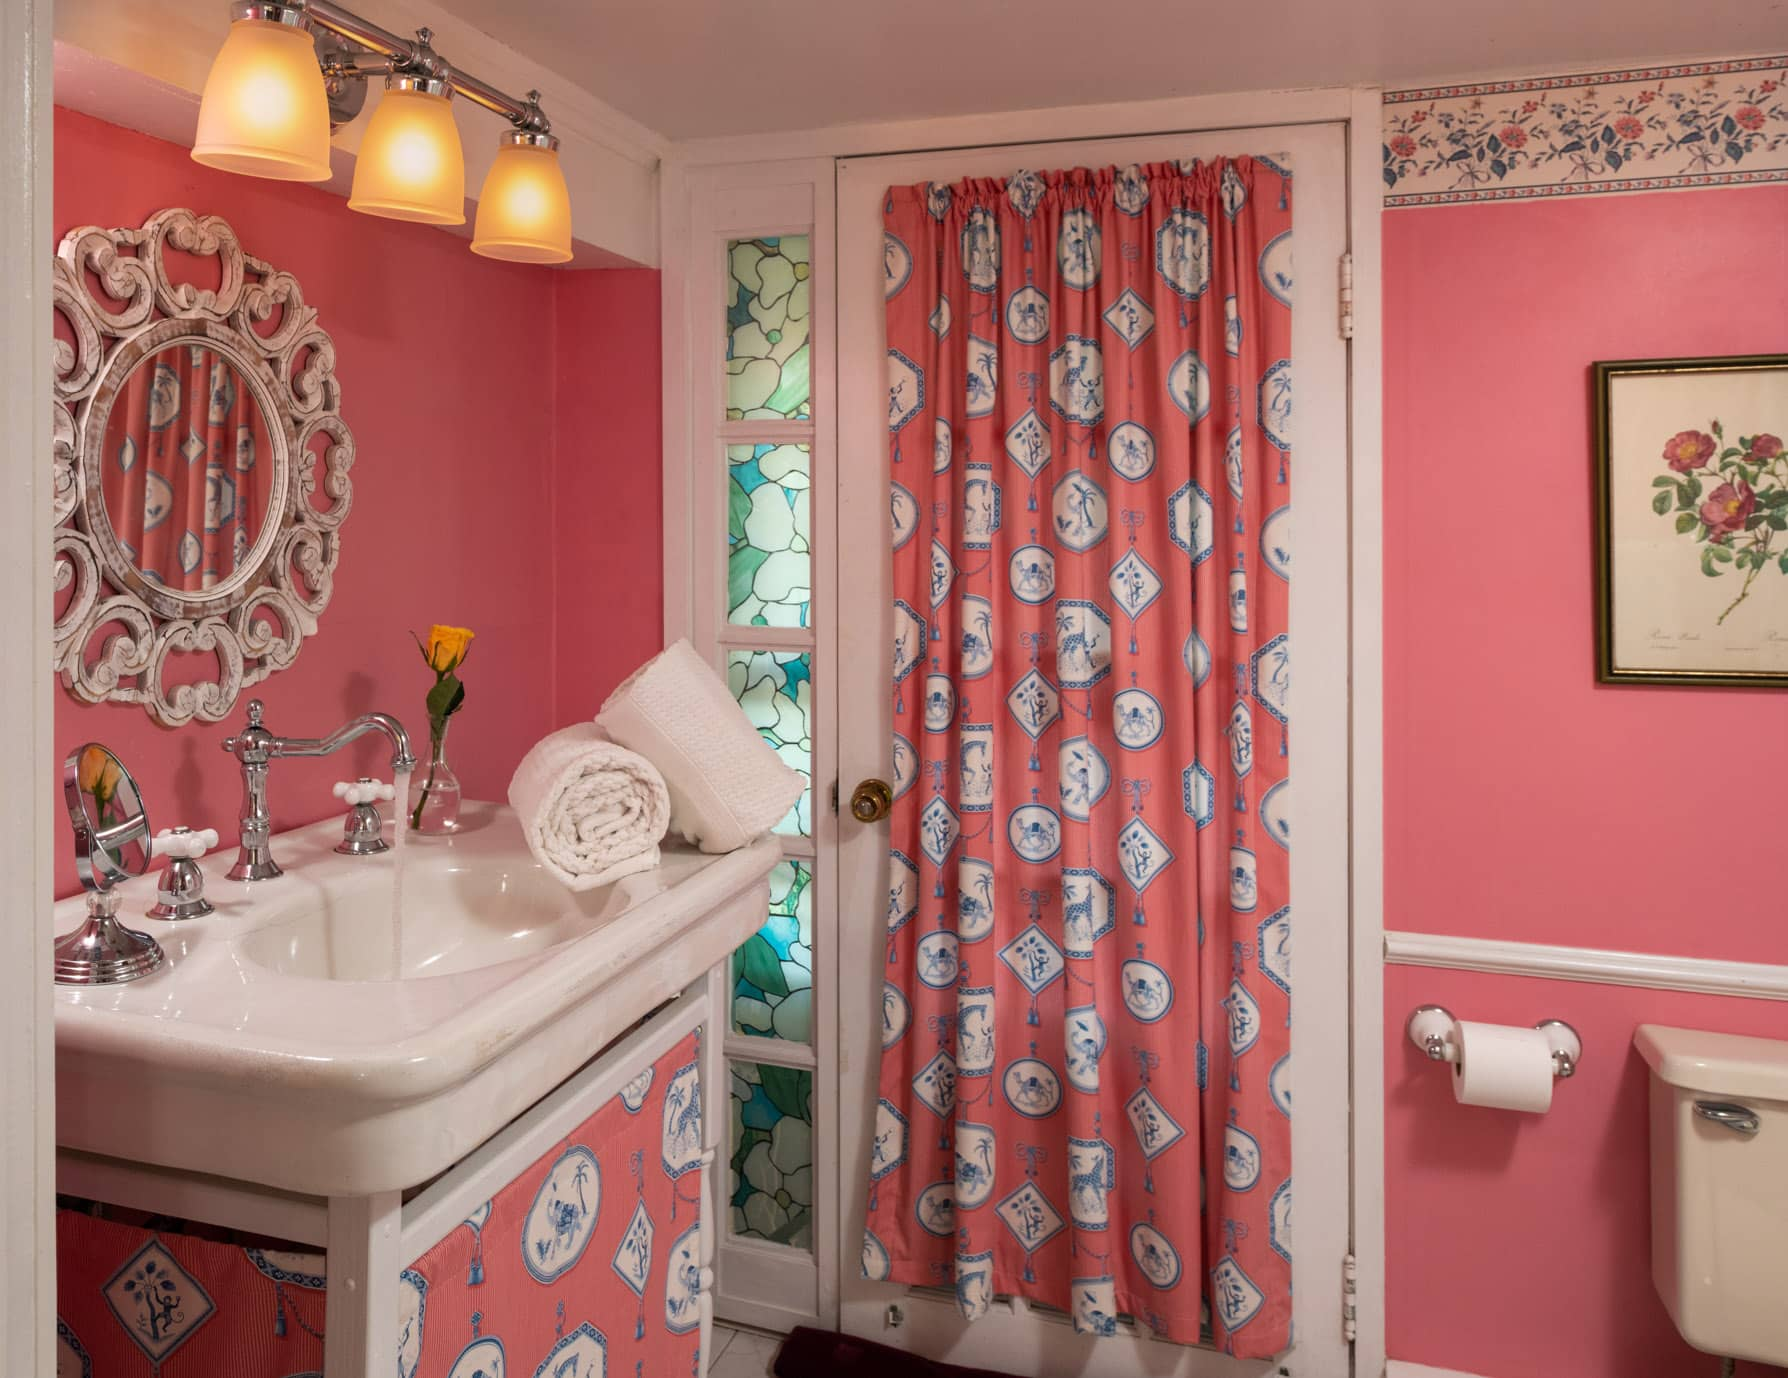 Overton bathroom sink with pink walls